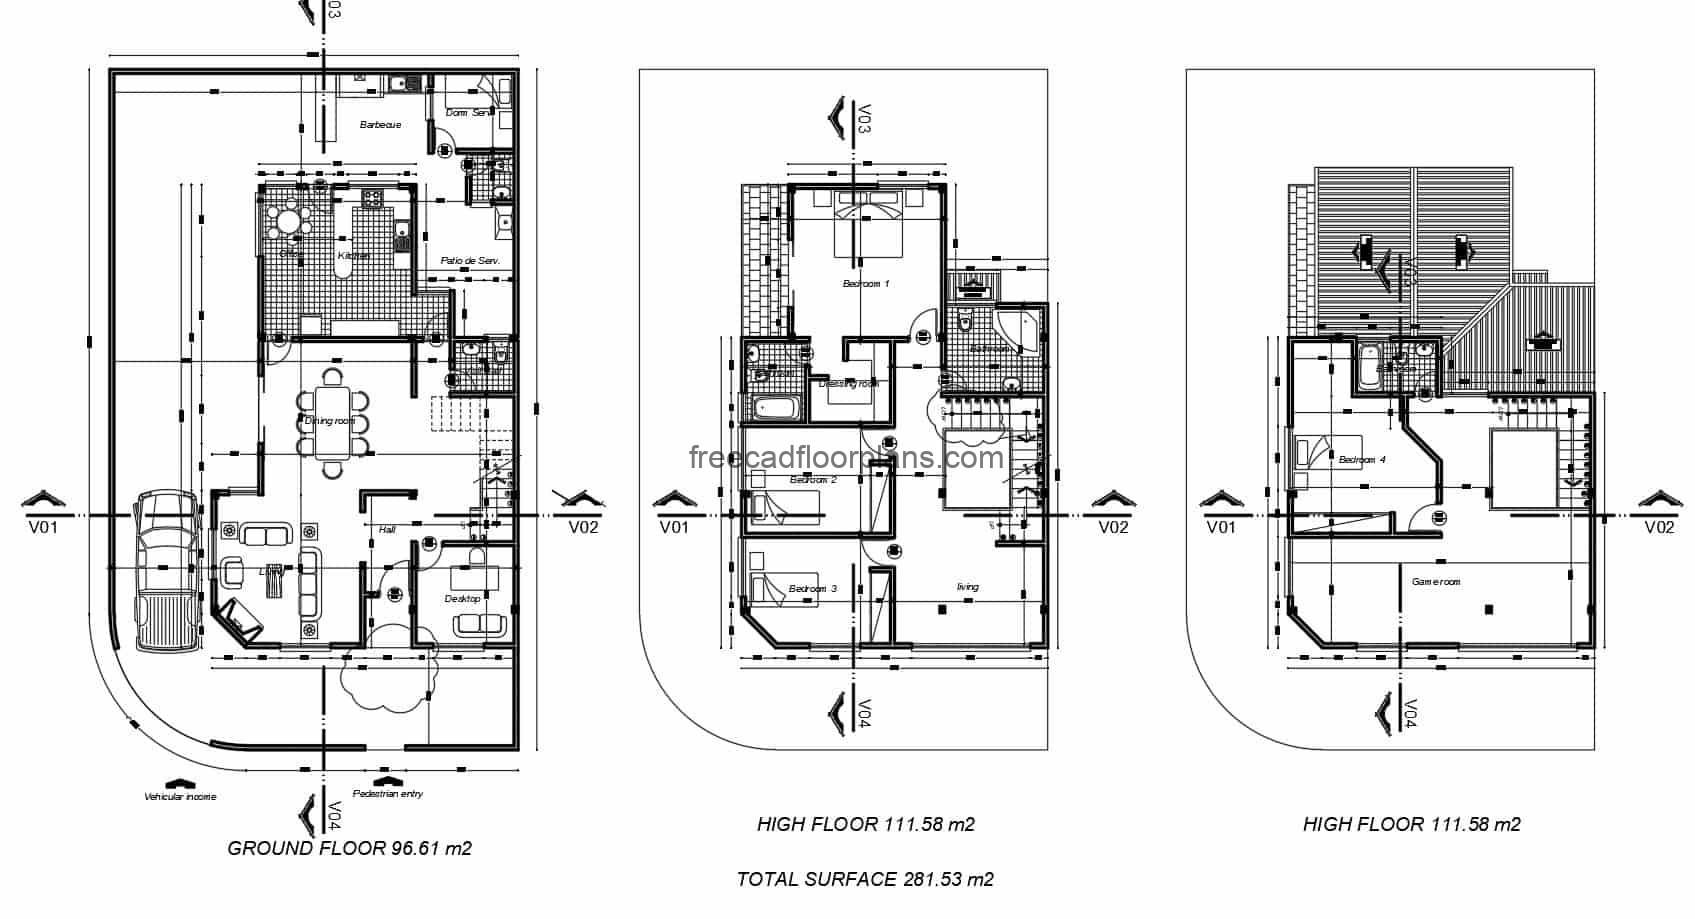 Architectural project in 2D format DWG of Autocad residence of three levels with sloping roofs of tile, first level garage, living room, study room, dining room, kitchen, service and laundry area, second level private area with family room and three bedrooms, and third level another bedroom with game room. Planos para descarga gratis con bloques de interiores de Autocad DWG